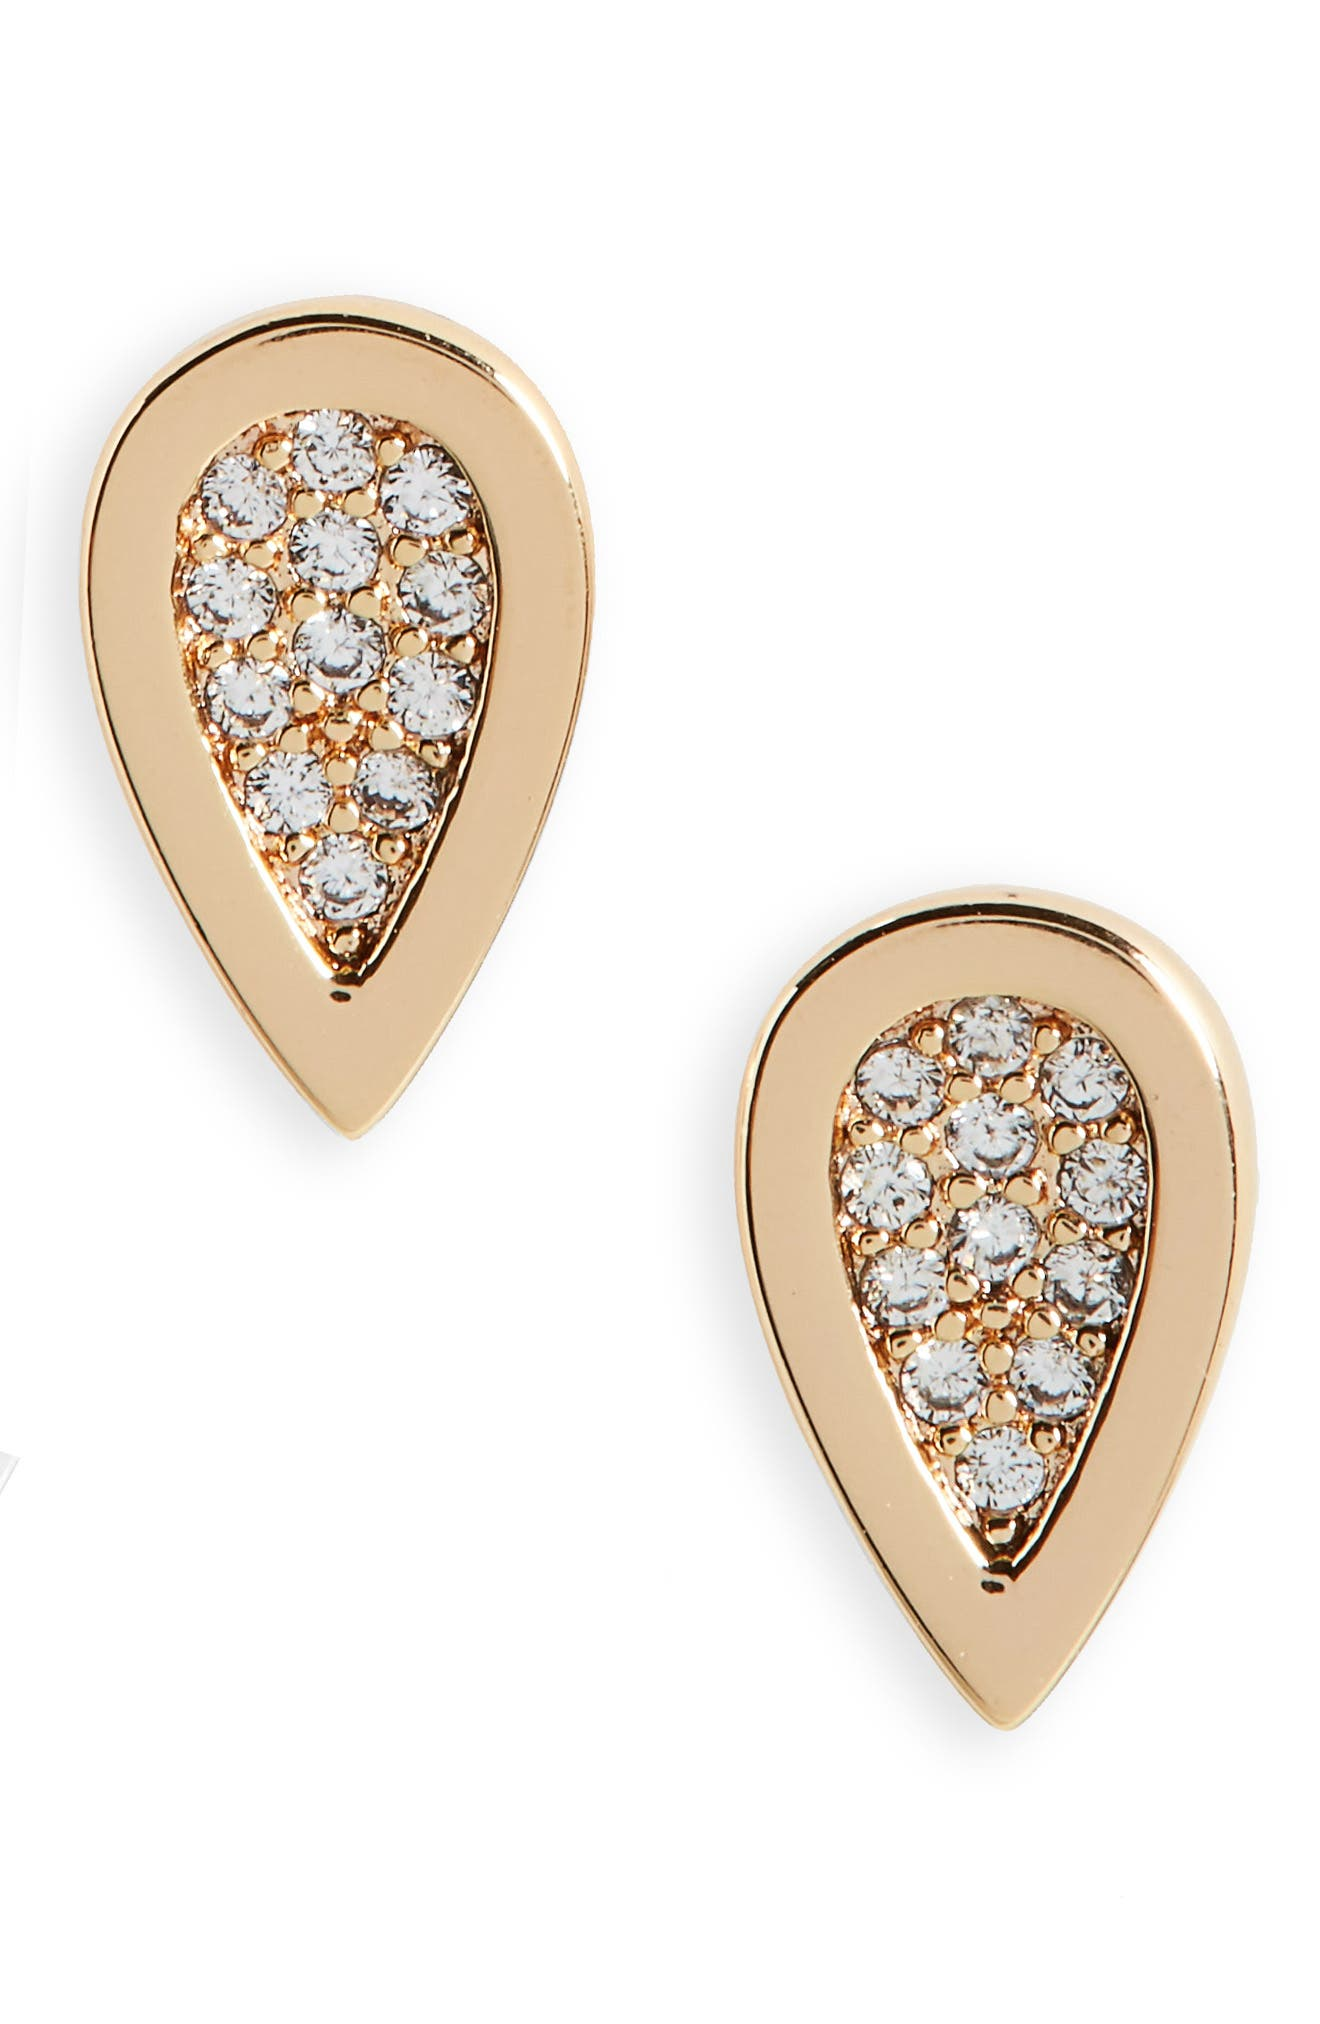 MELANIE AULD Teardrop Stud Earrings